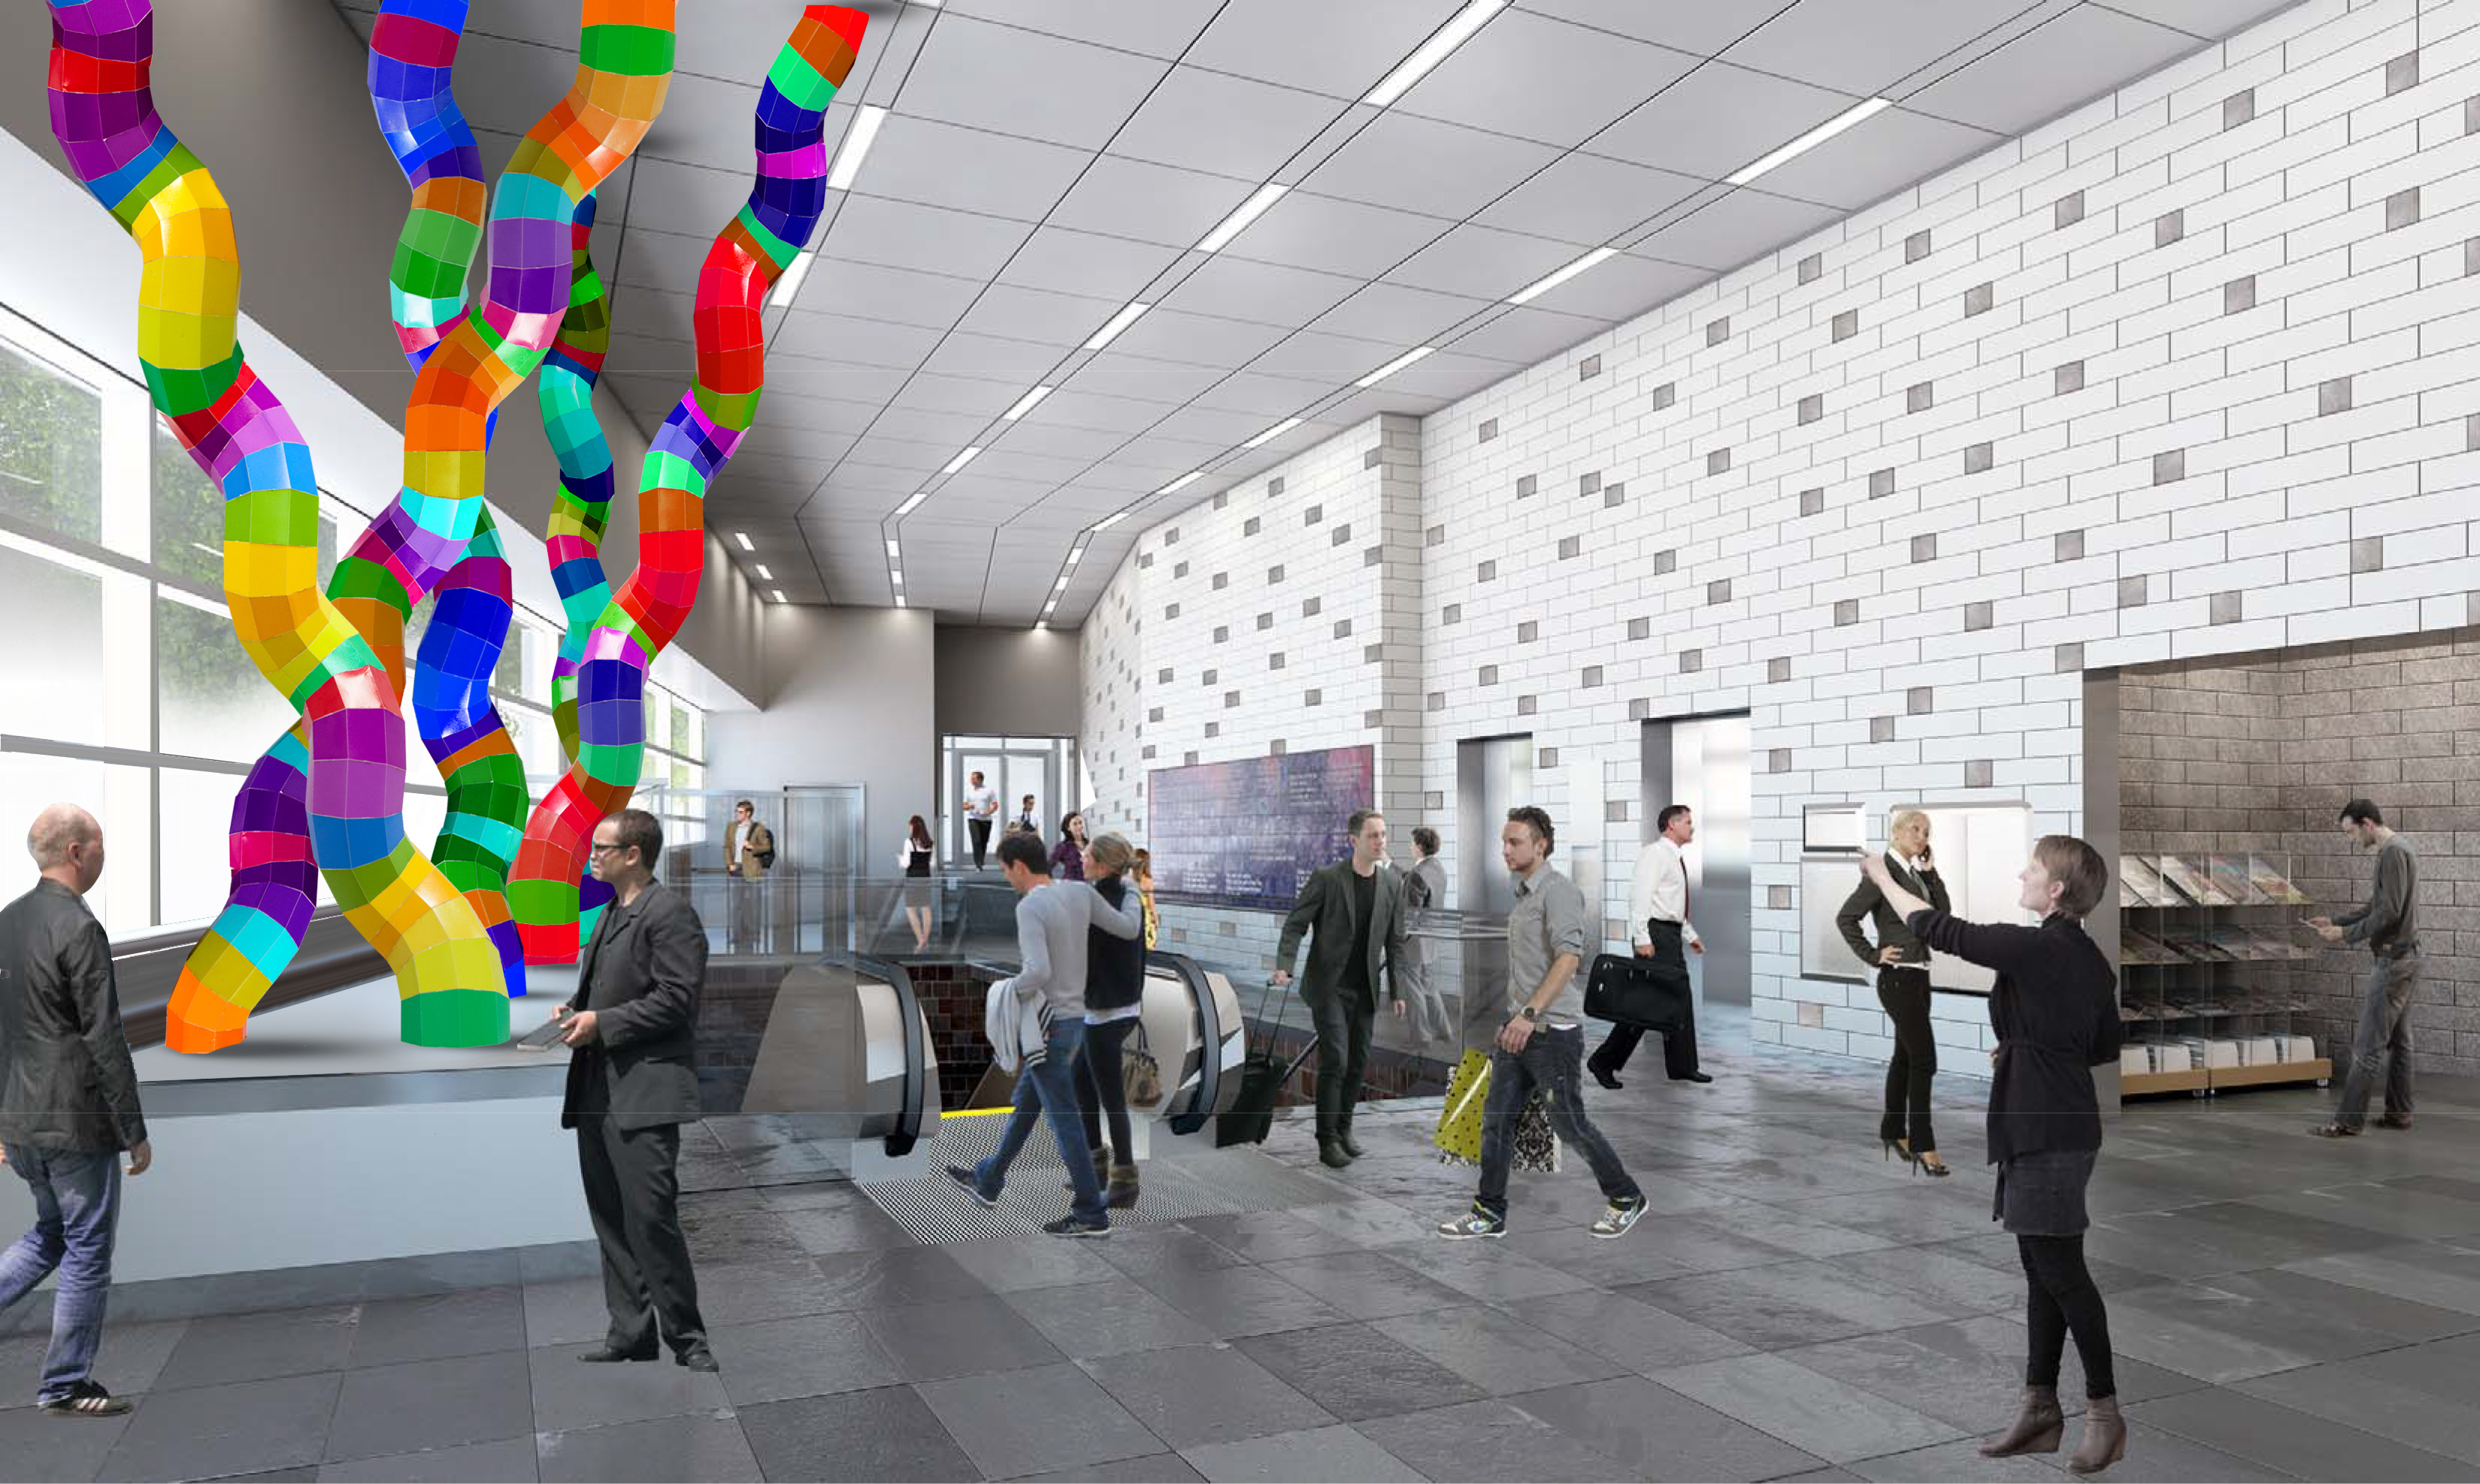 Artistic rendering, courtesy of artist Shasti O'Leary Soudant and HOK Architects, for public art inside the Allen Street/Medical Campus Metro Rail station.